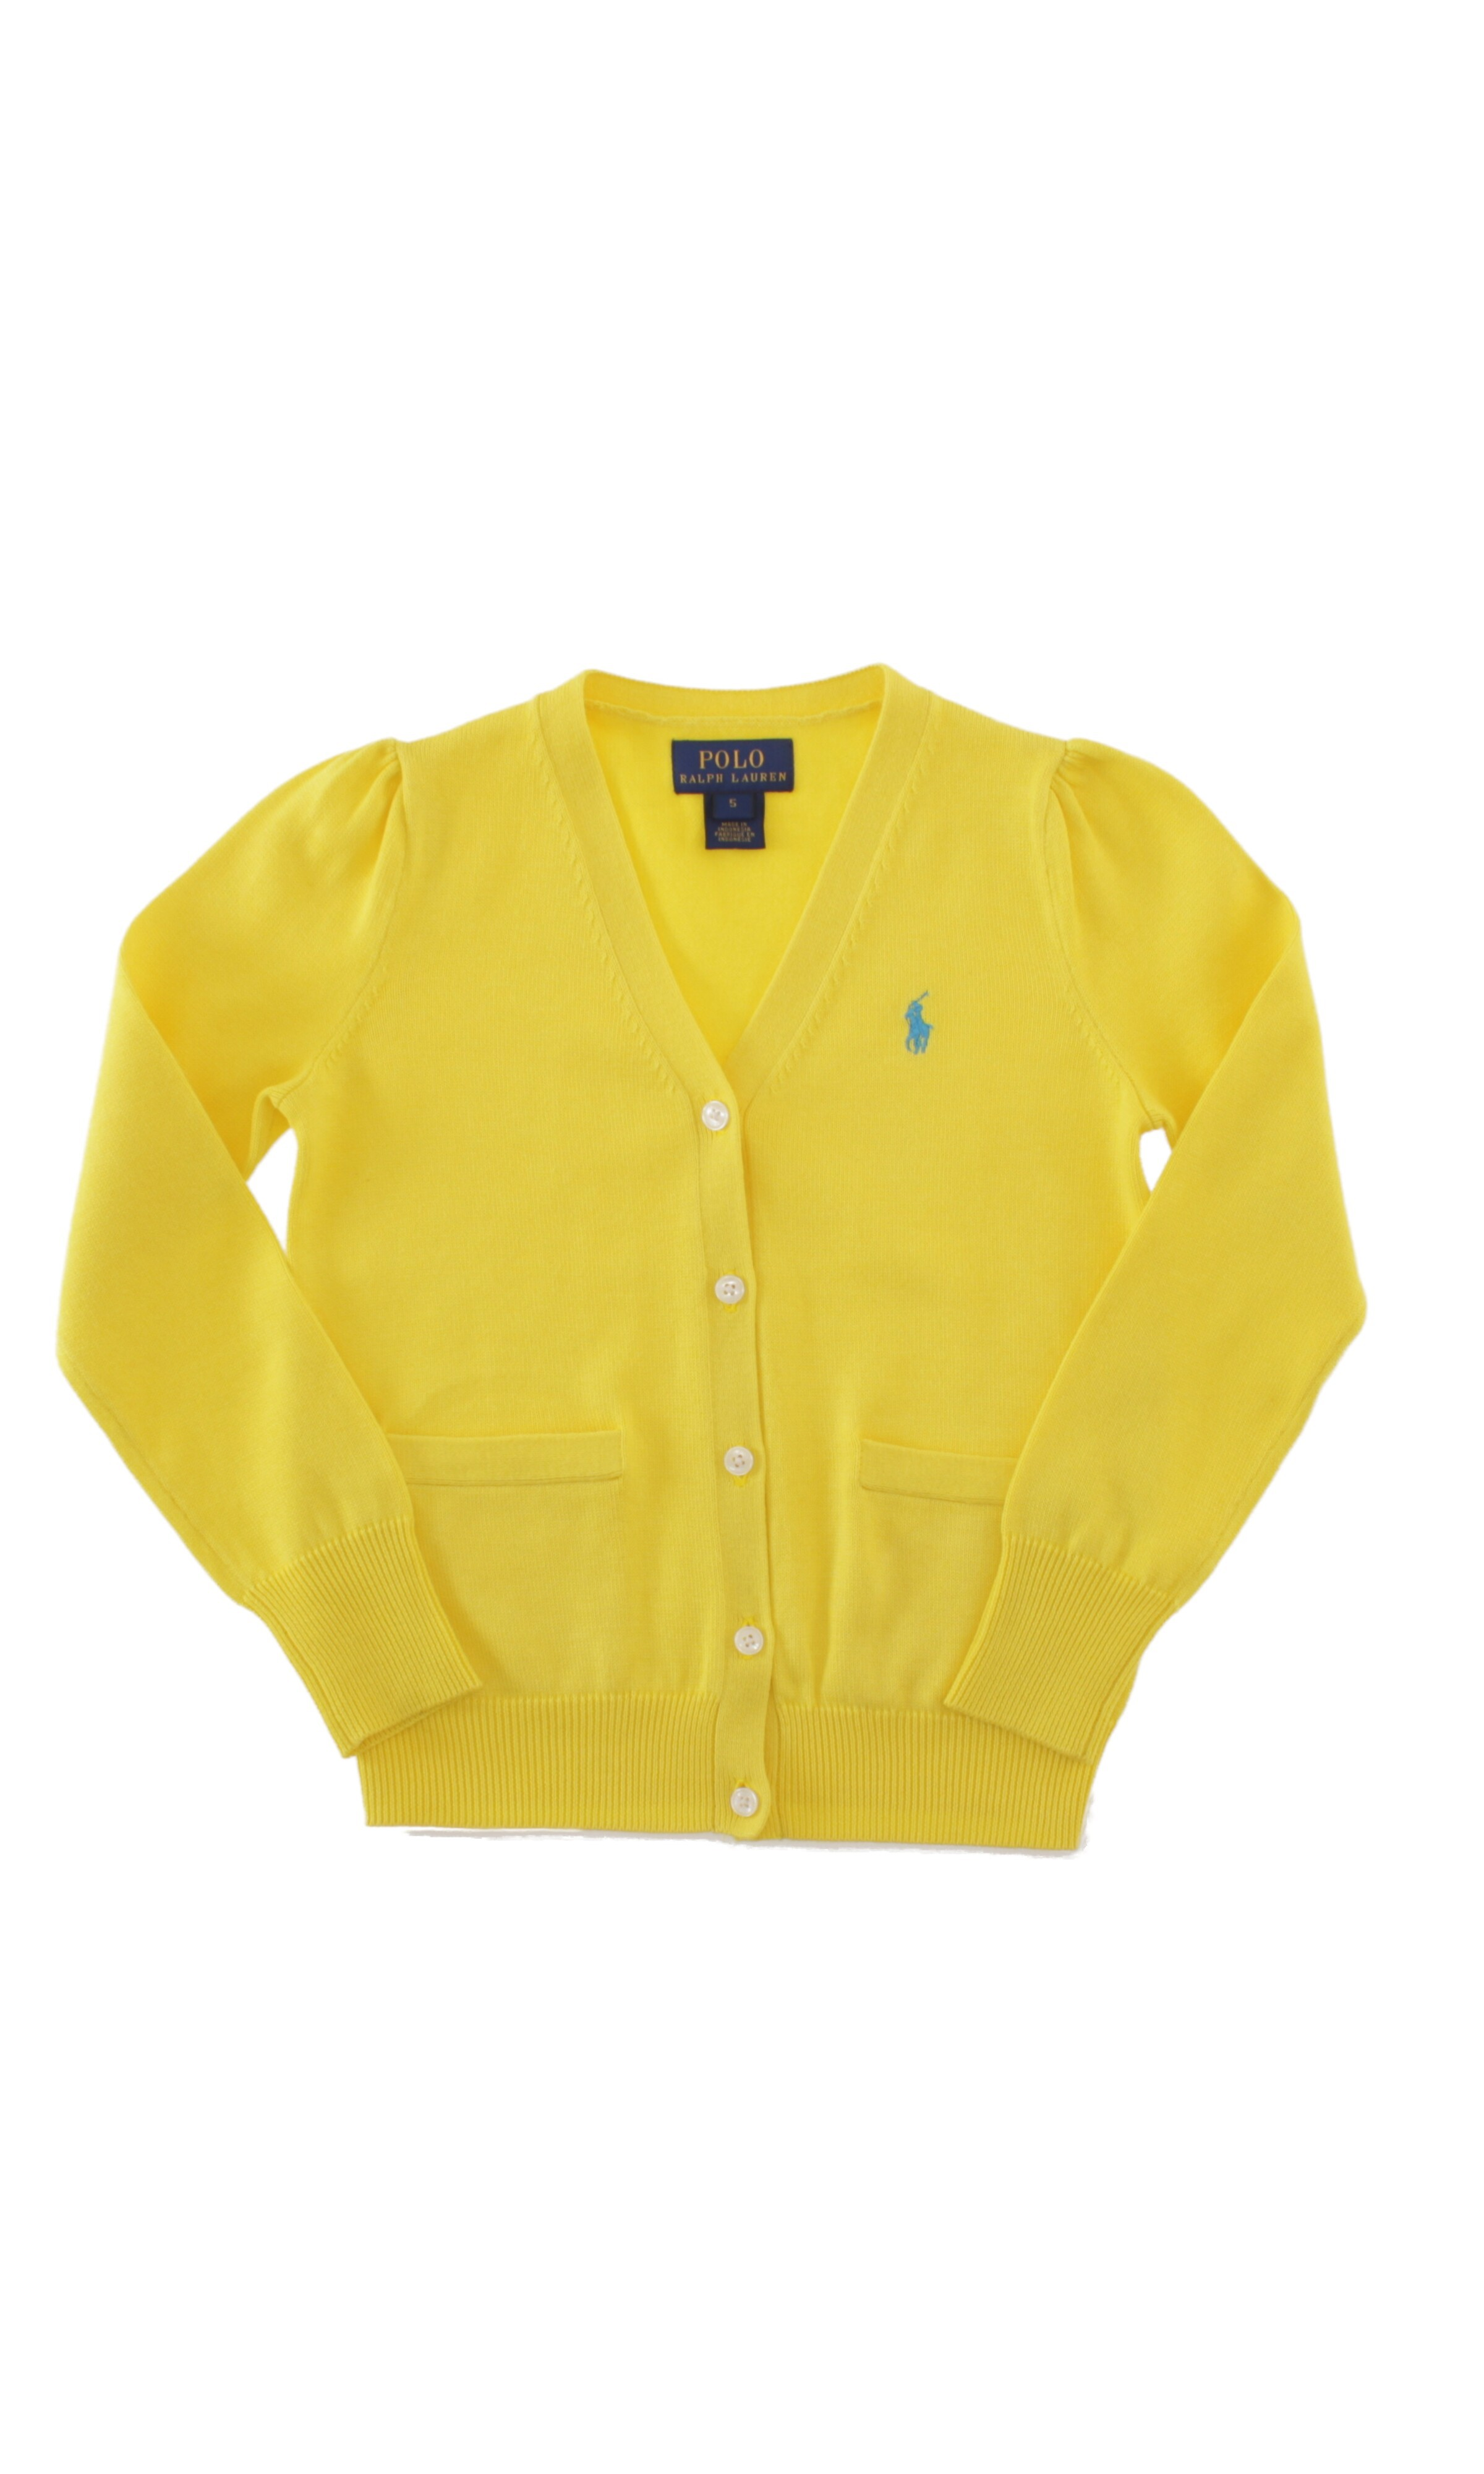 Yellow girl's cardigan, Polo Ralph Lauren - Celebrity-Club